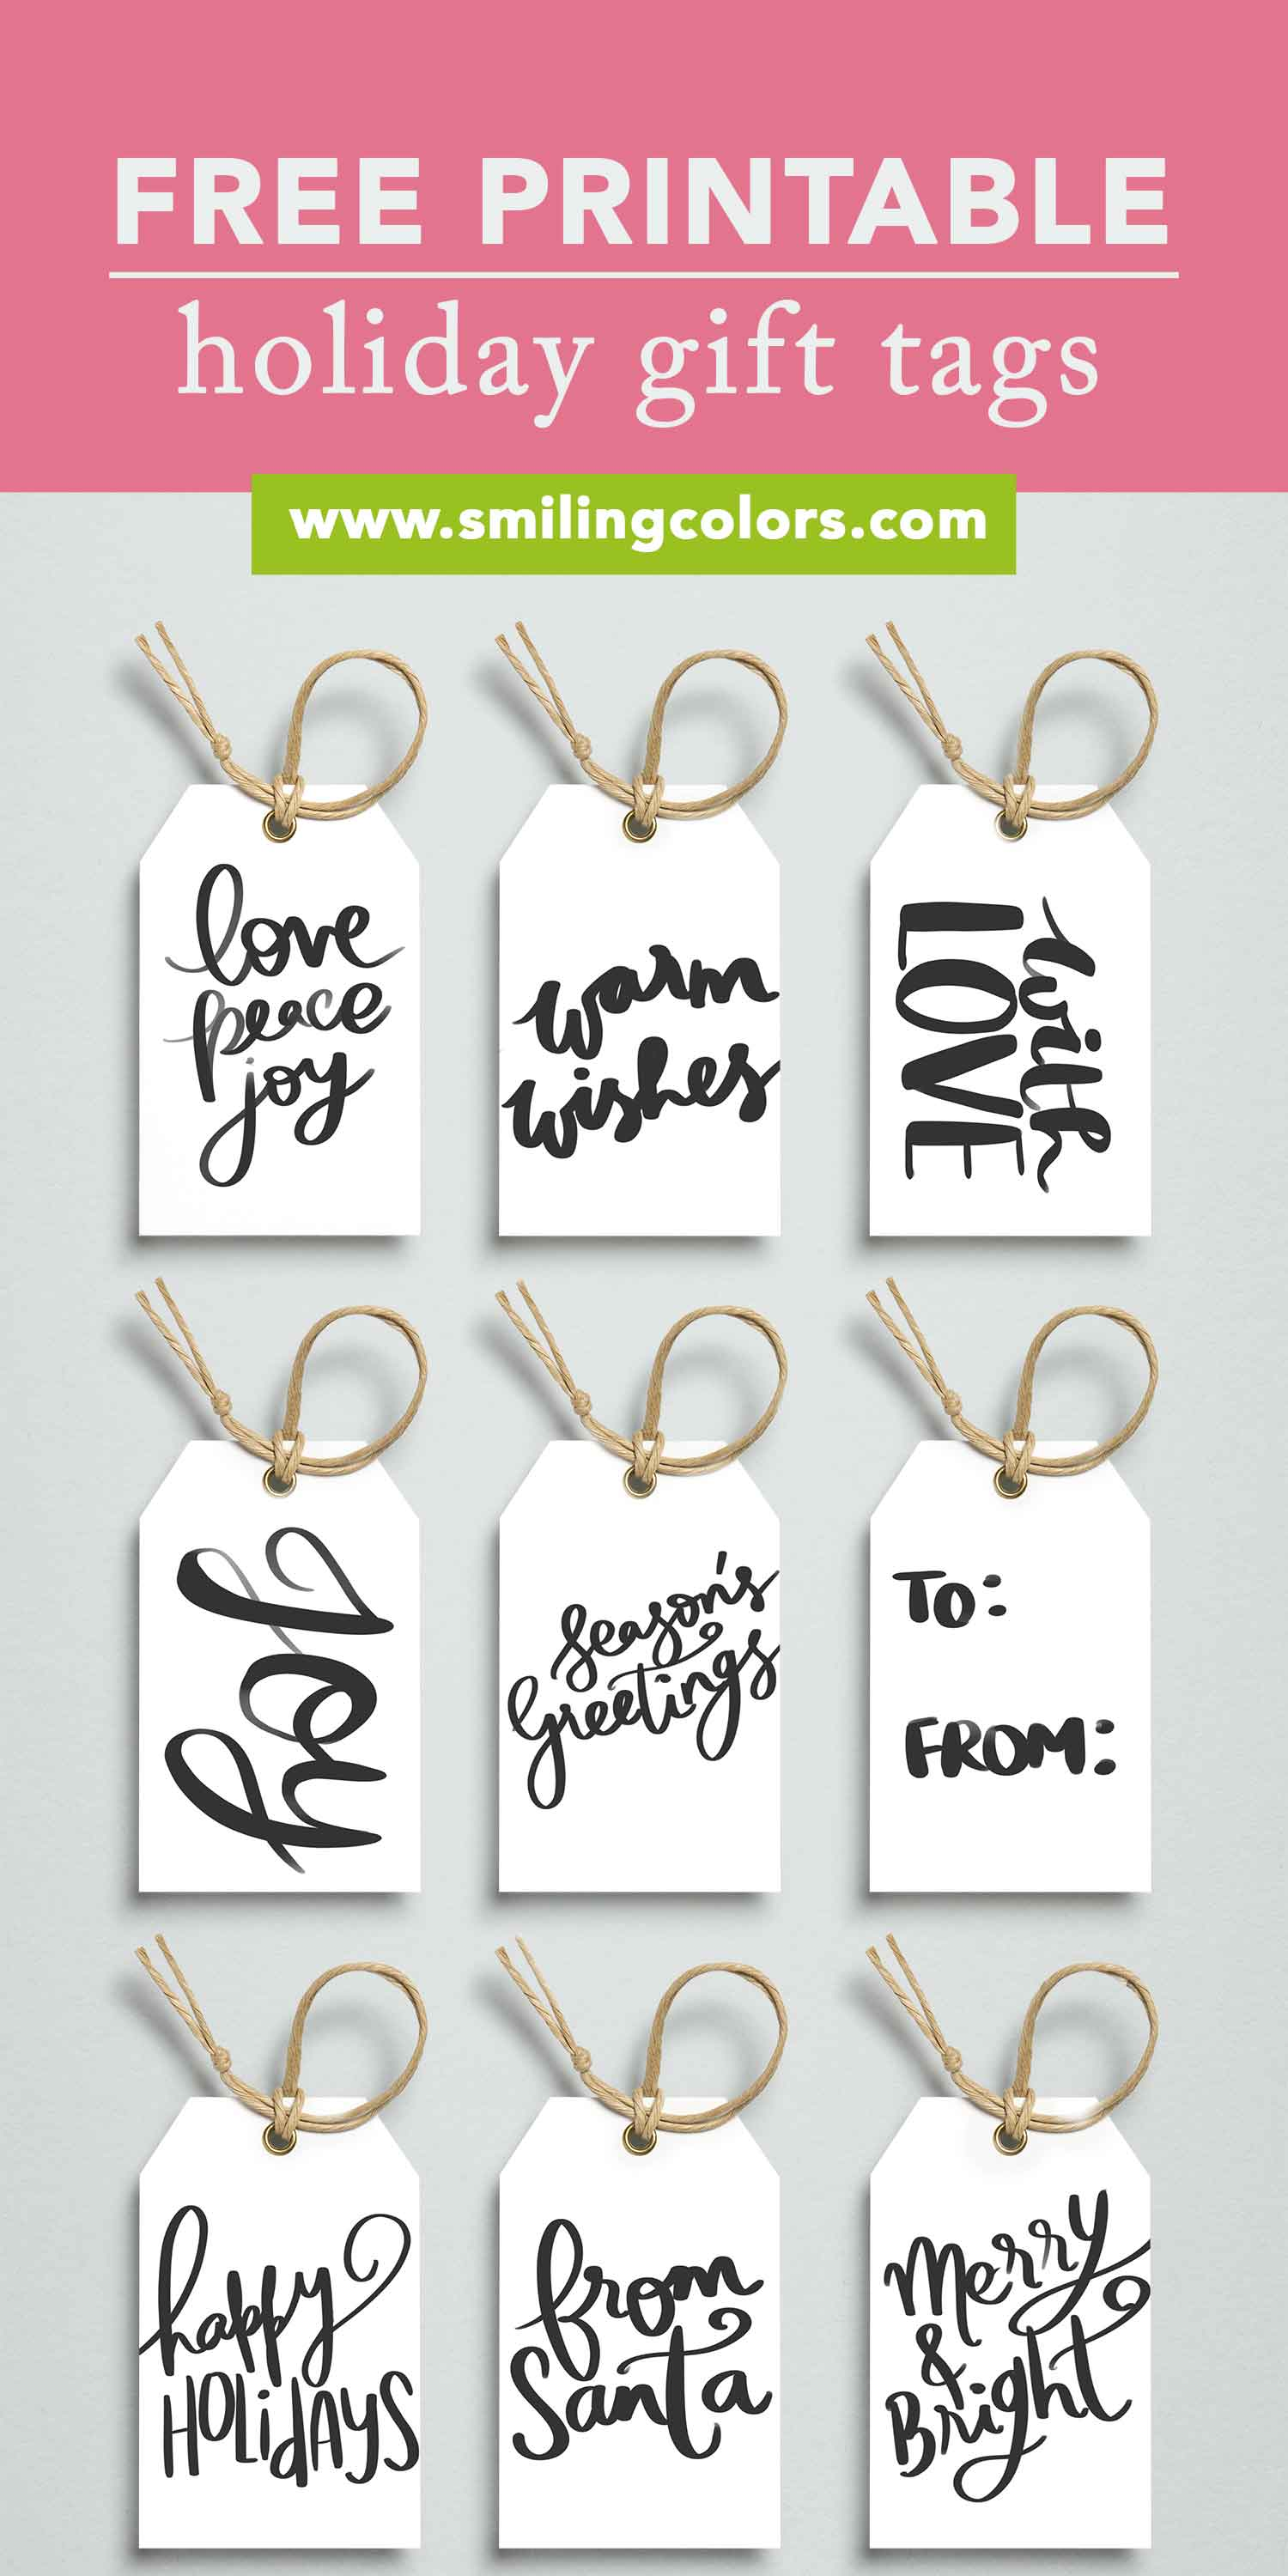 photo about Printable Holiday Tags called Printable Holiday vacation reward tags, Free of charge toward obtain presently - Smitha Katti